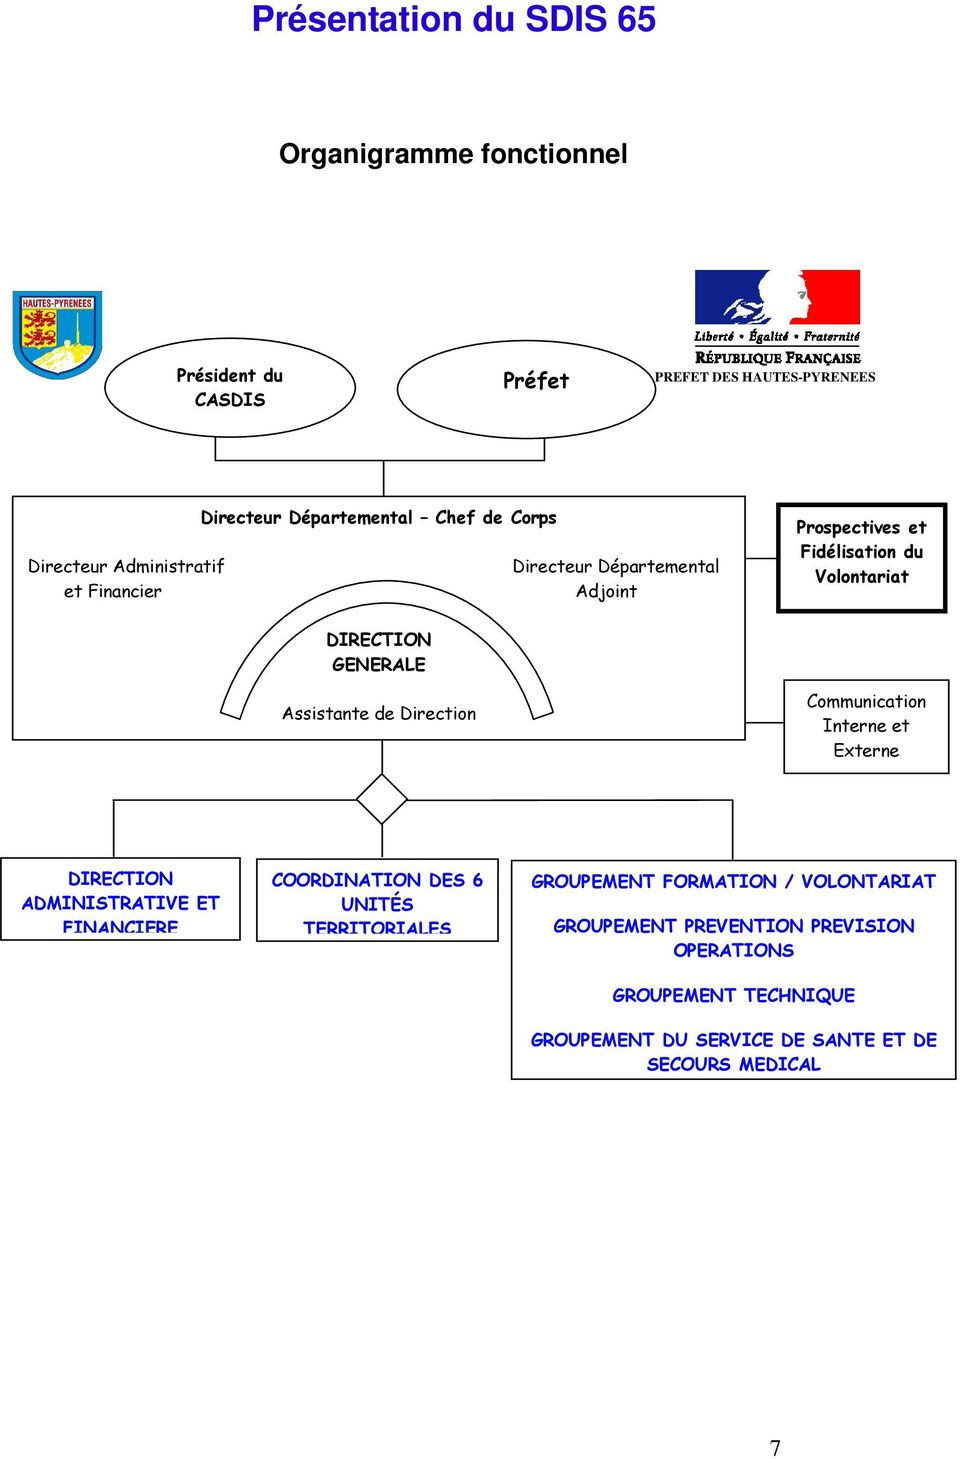 Assistante de Direction Communication Interne et Externe DIRECTION ADMINISTRATIVE ET FINANCIERE COORDINATION DES 6 UNITÉS TERRITORIALES